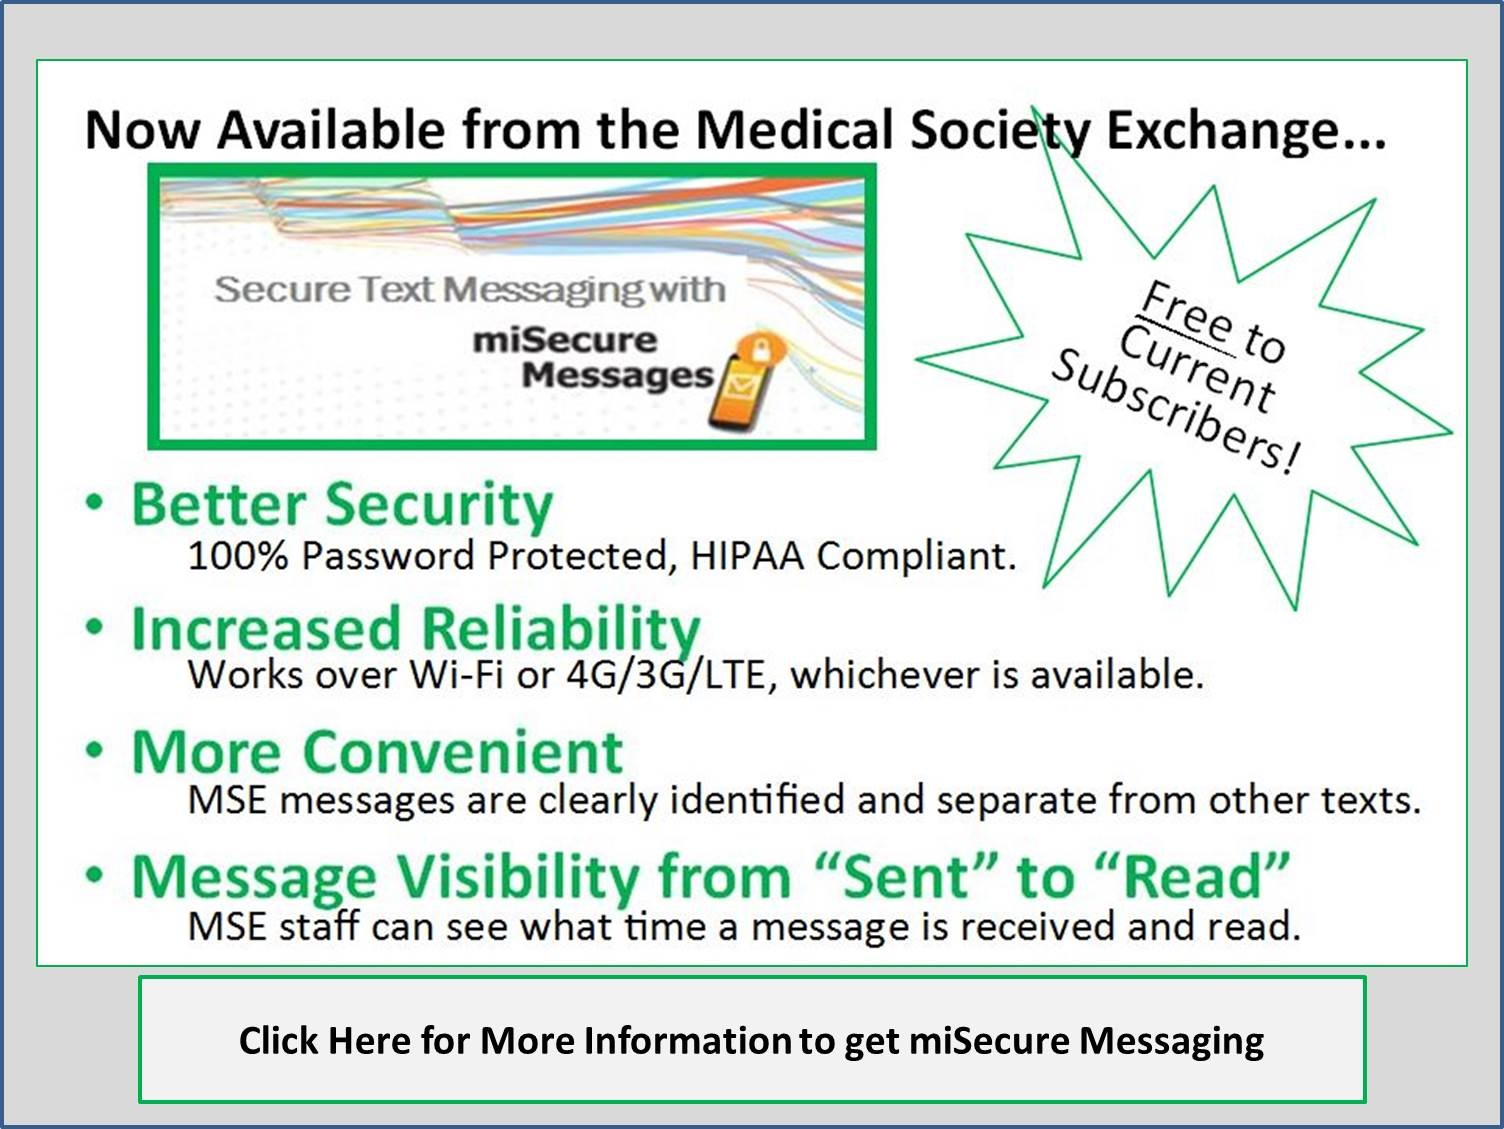 Medical Society Exchange (Call Center)